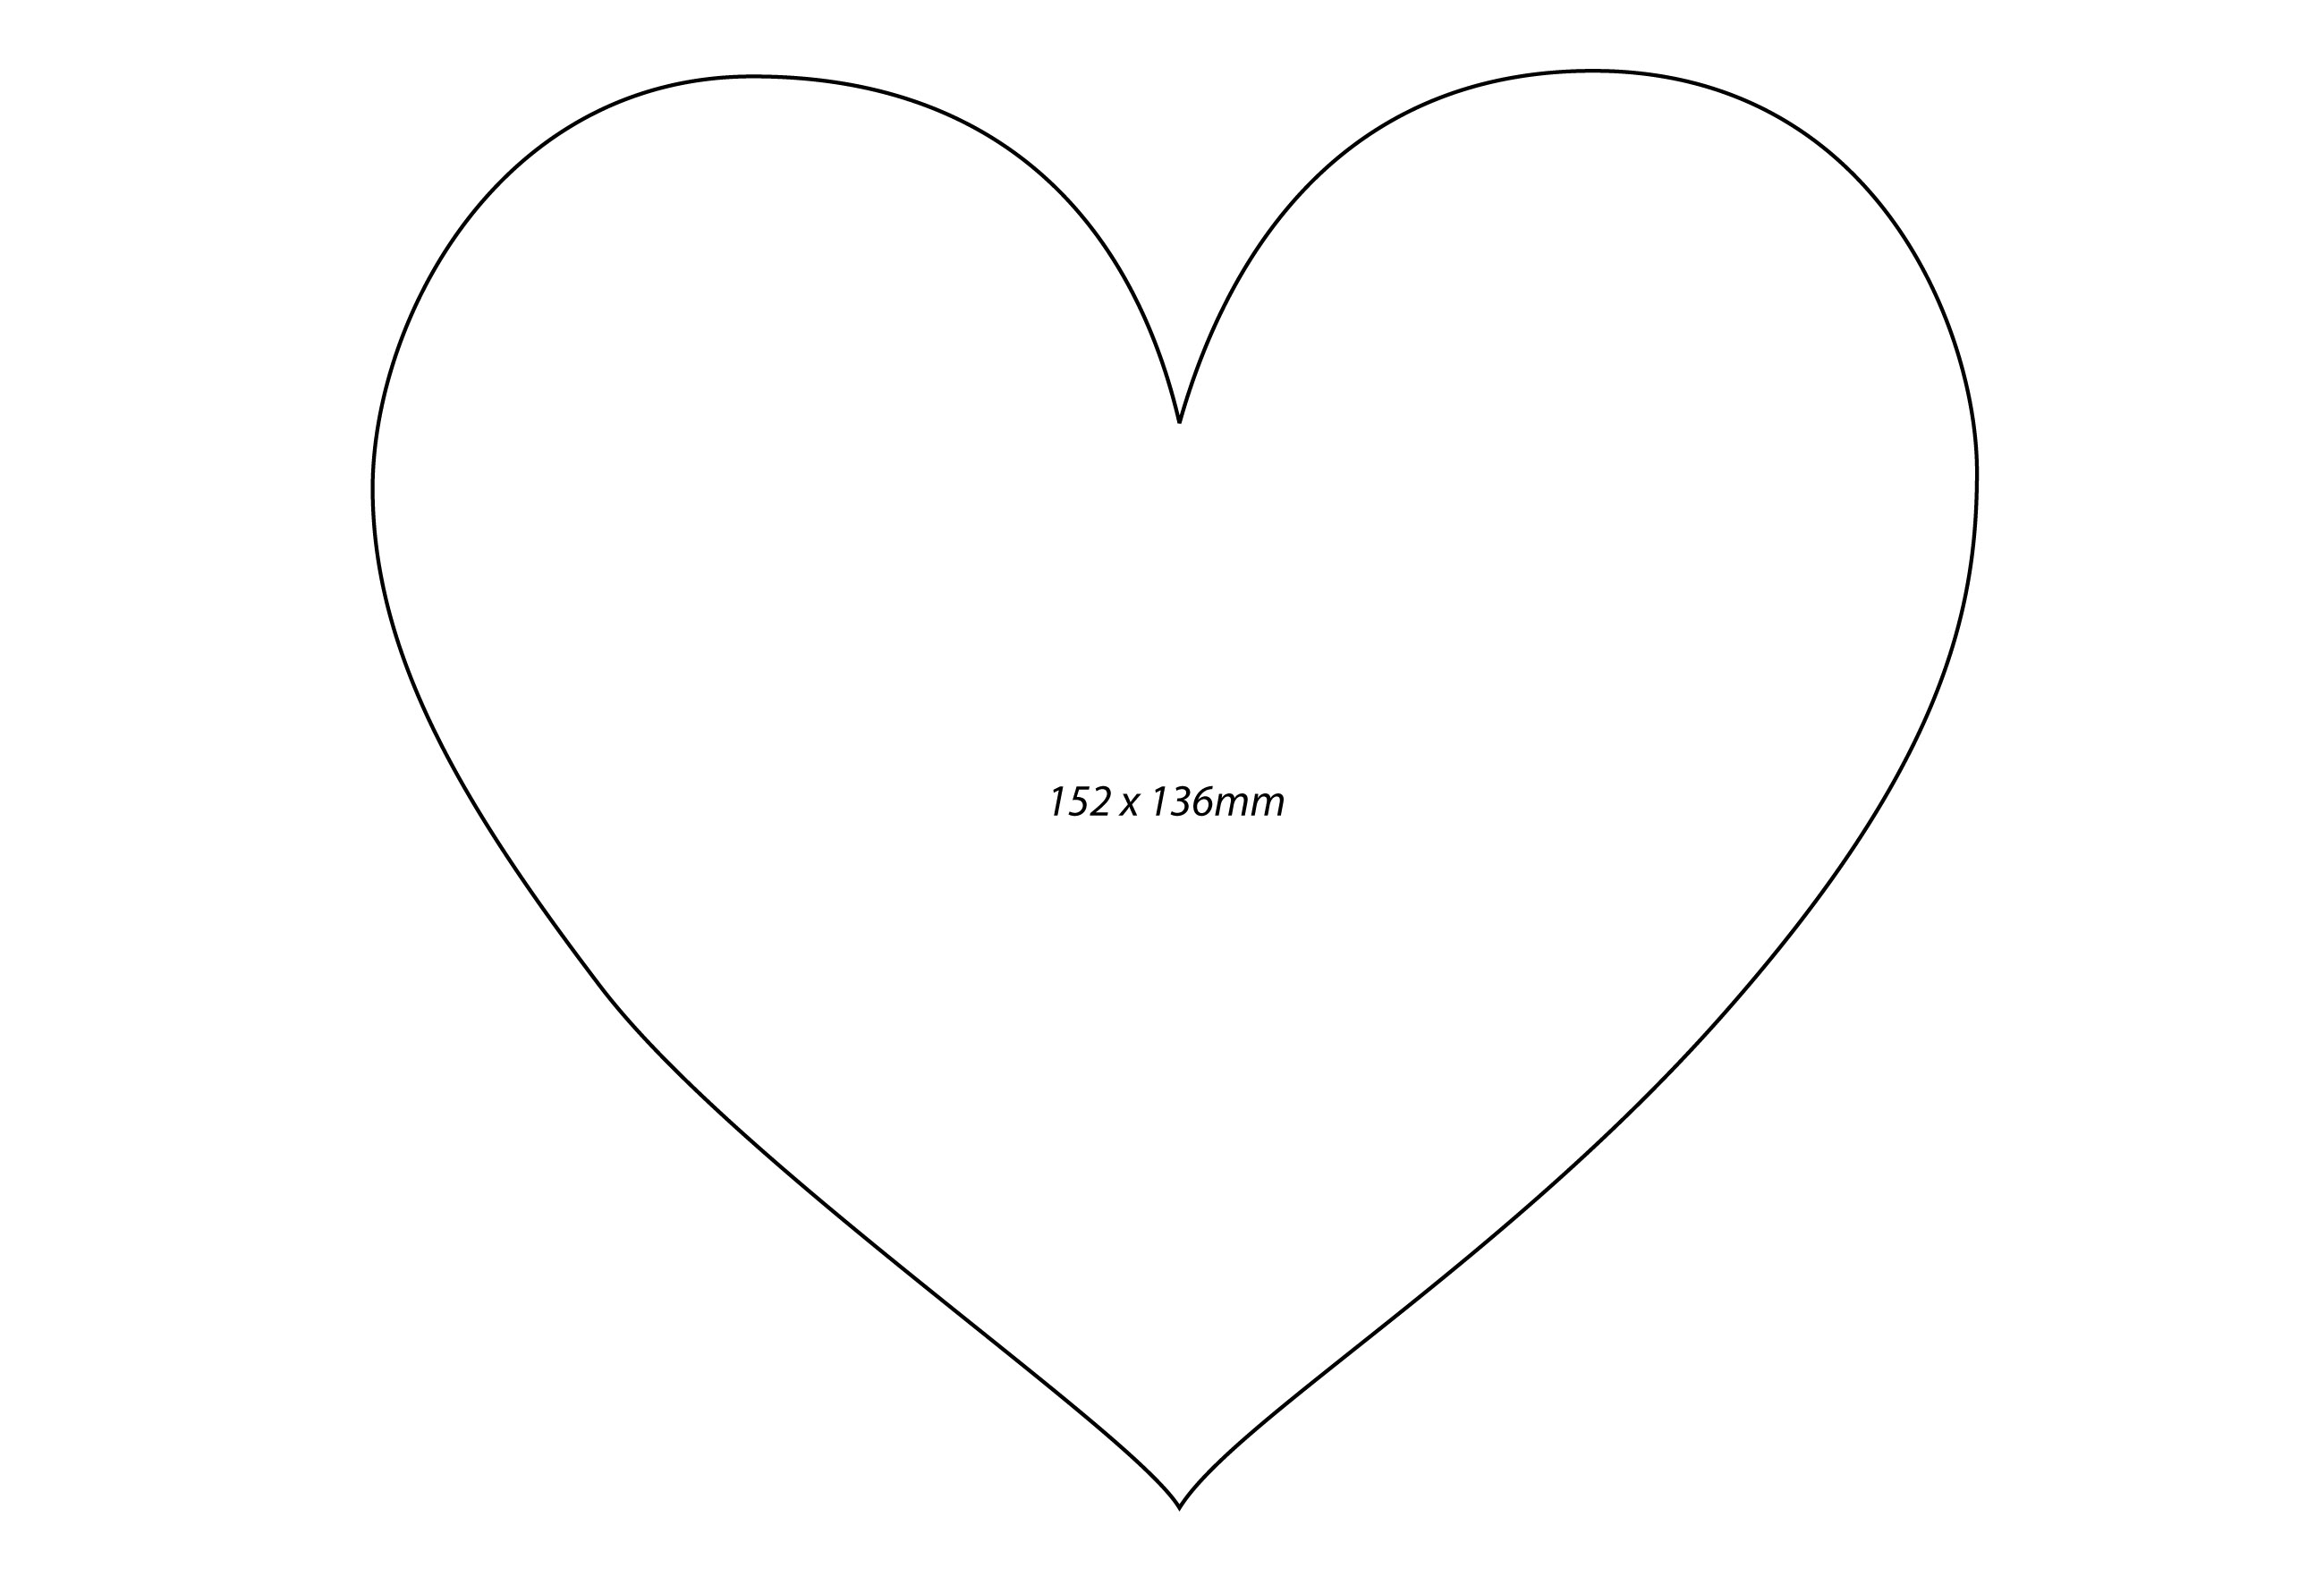 Large Heart Template Printable - ClipArt Best